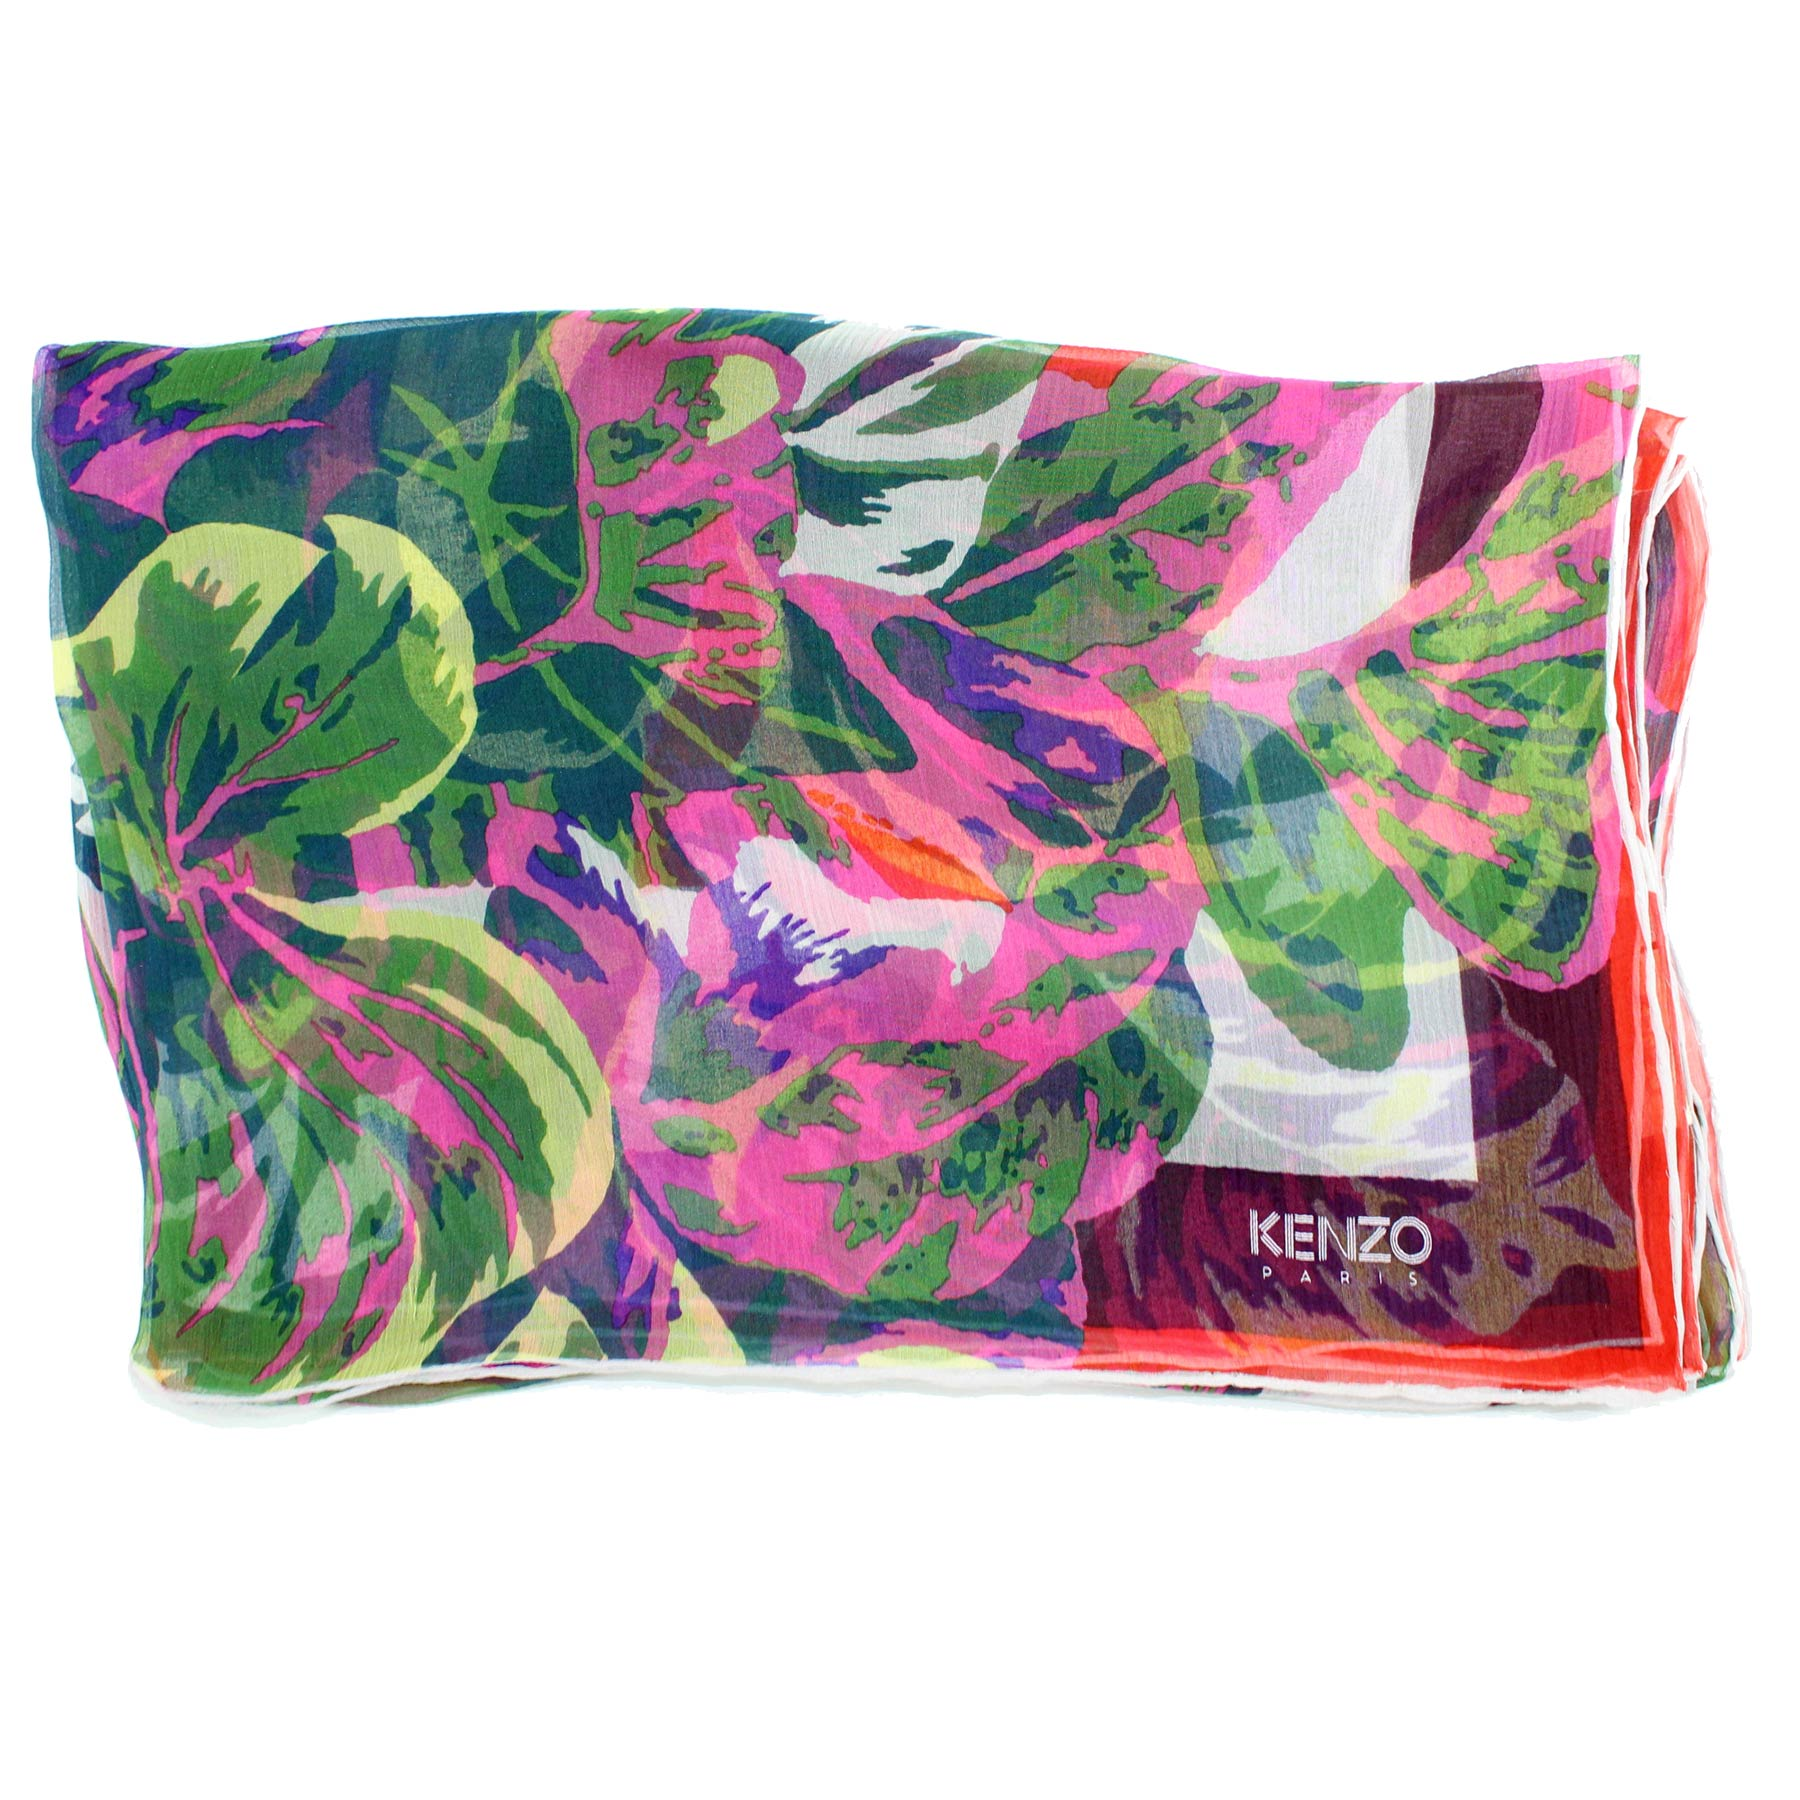 Kenzo Scarf Pink Green Floral - Extra Large Square Chiffon Silk Wrap